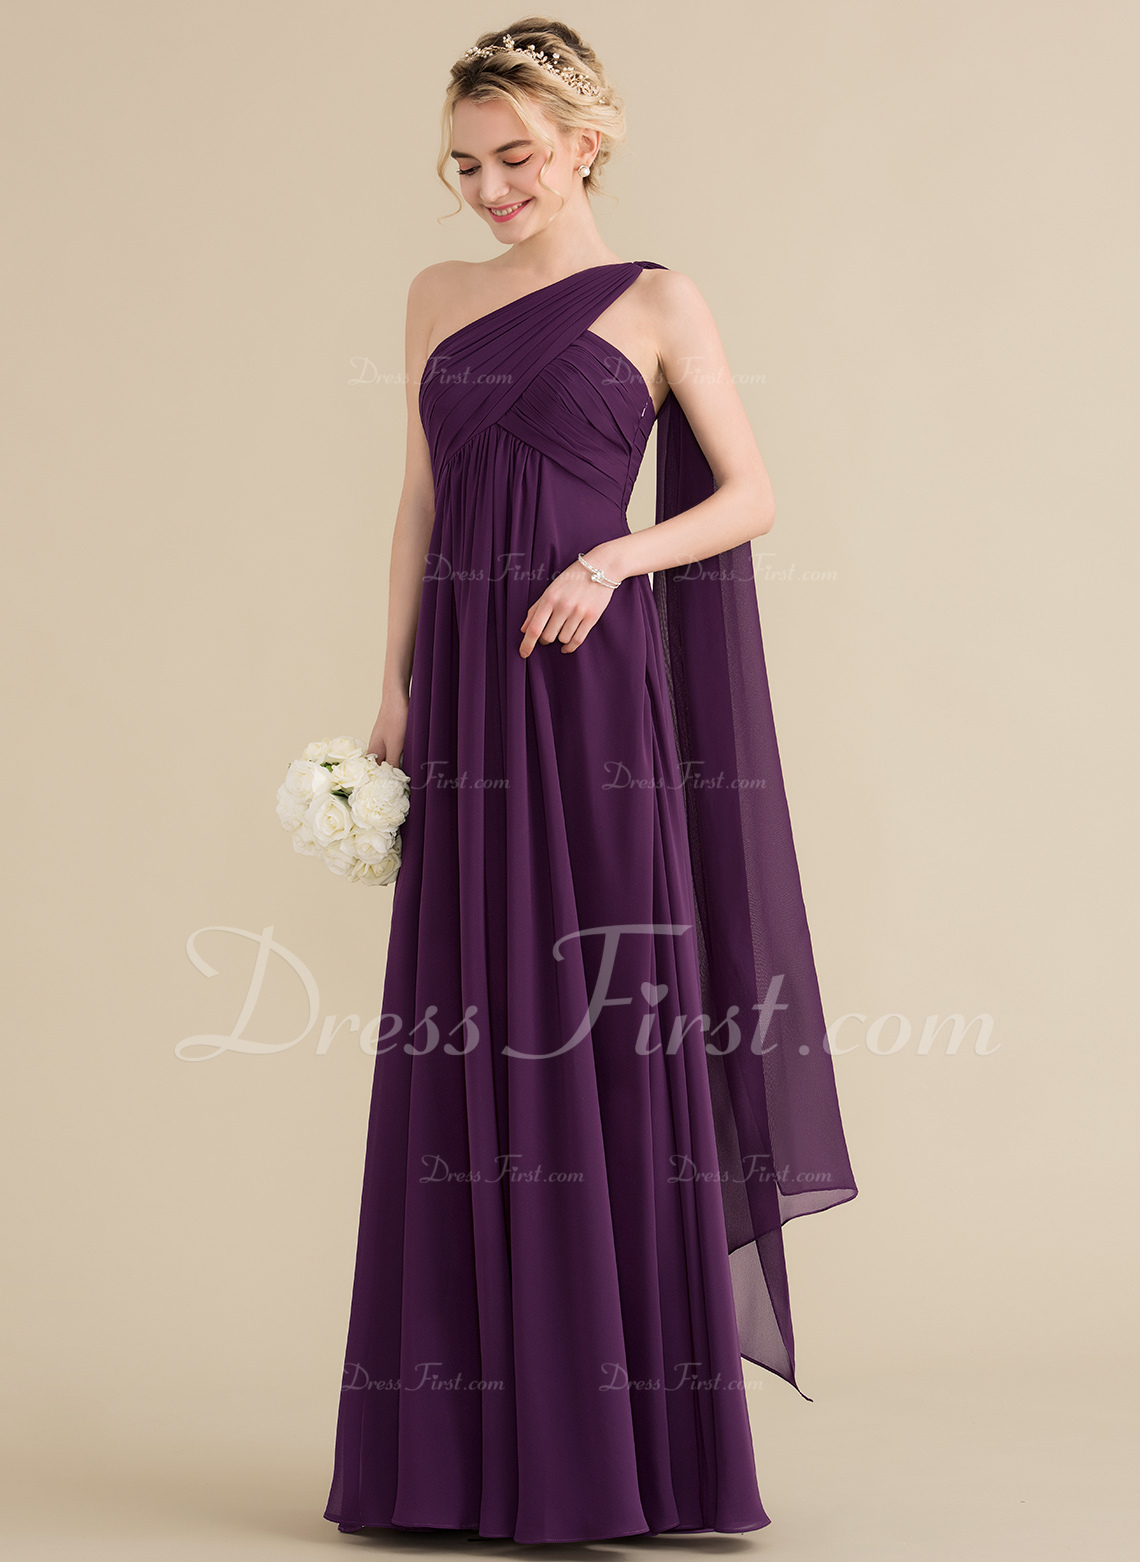 A-Line/Princess One-Shoulder Floor-Length Chiffon Bridesmaid Dress With Ruffle